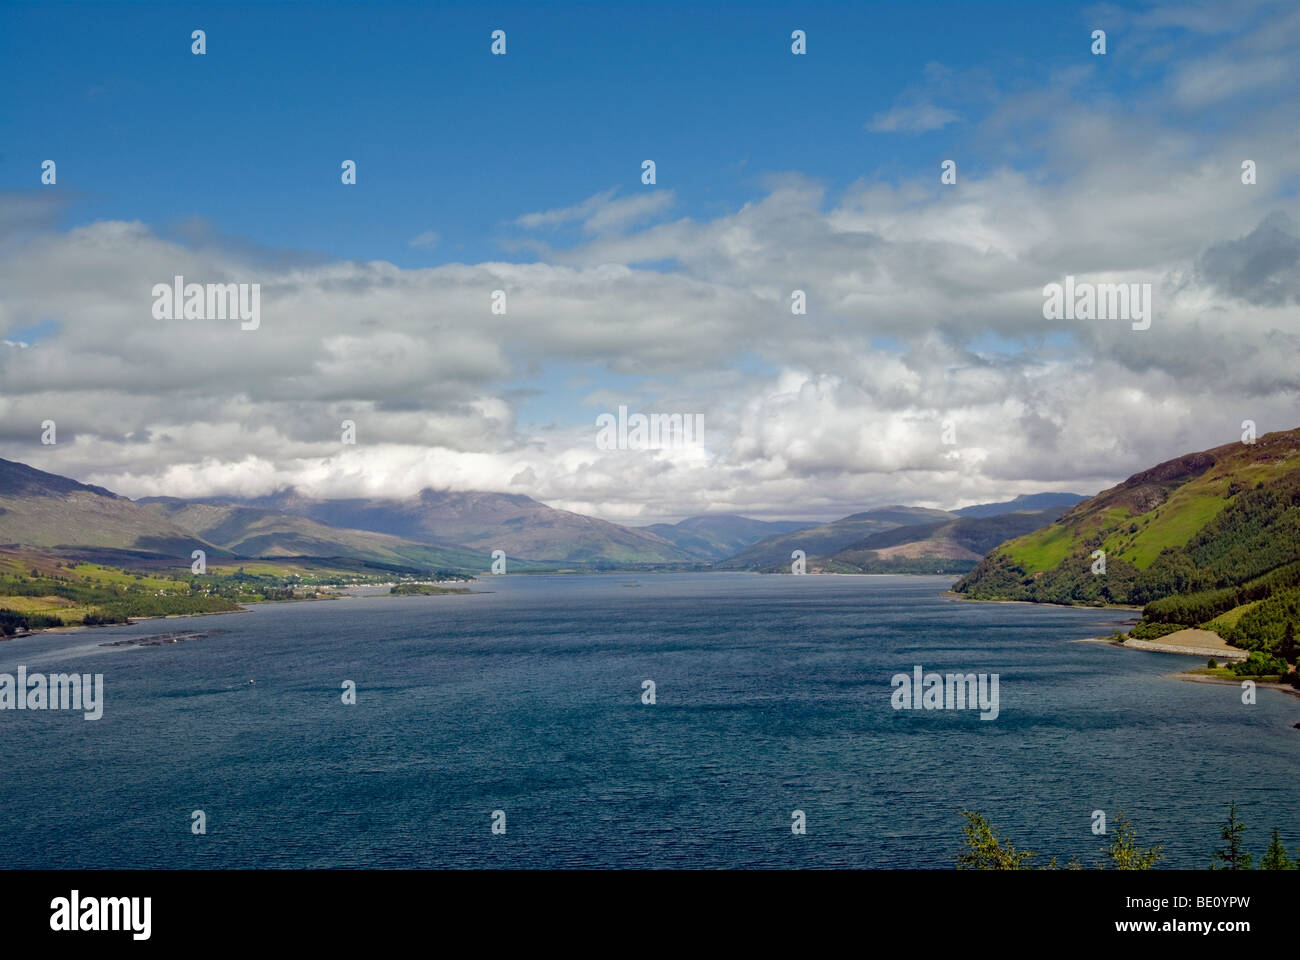 Birds eye view over Loch Carron on the west coast of Scotland - Stock Image